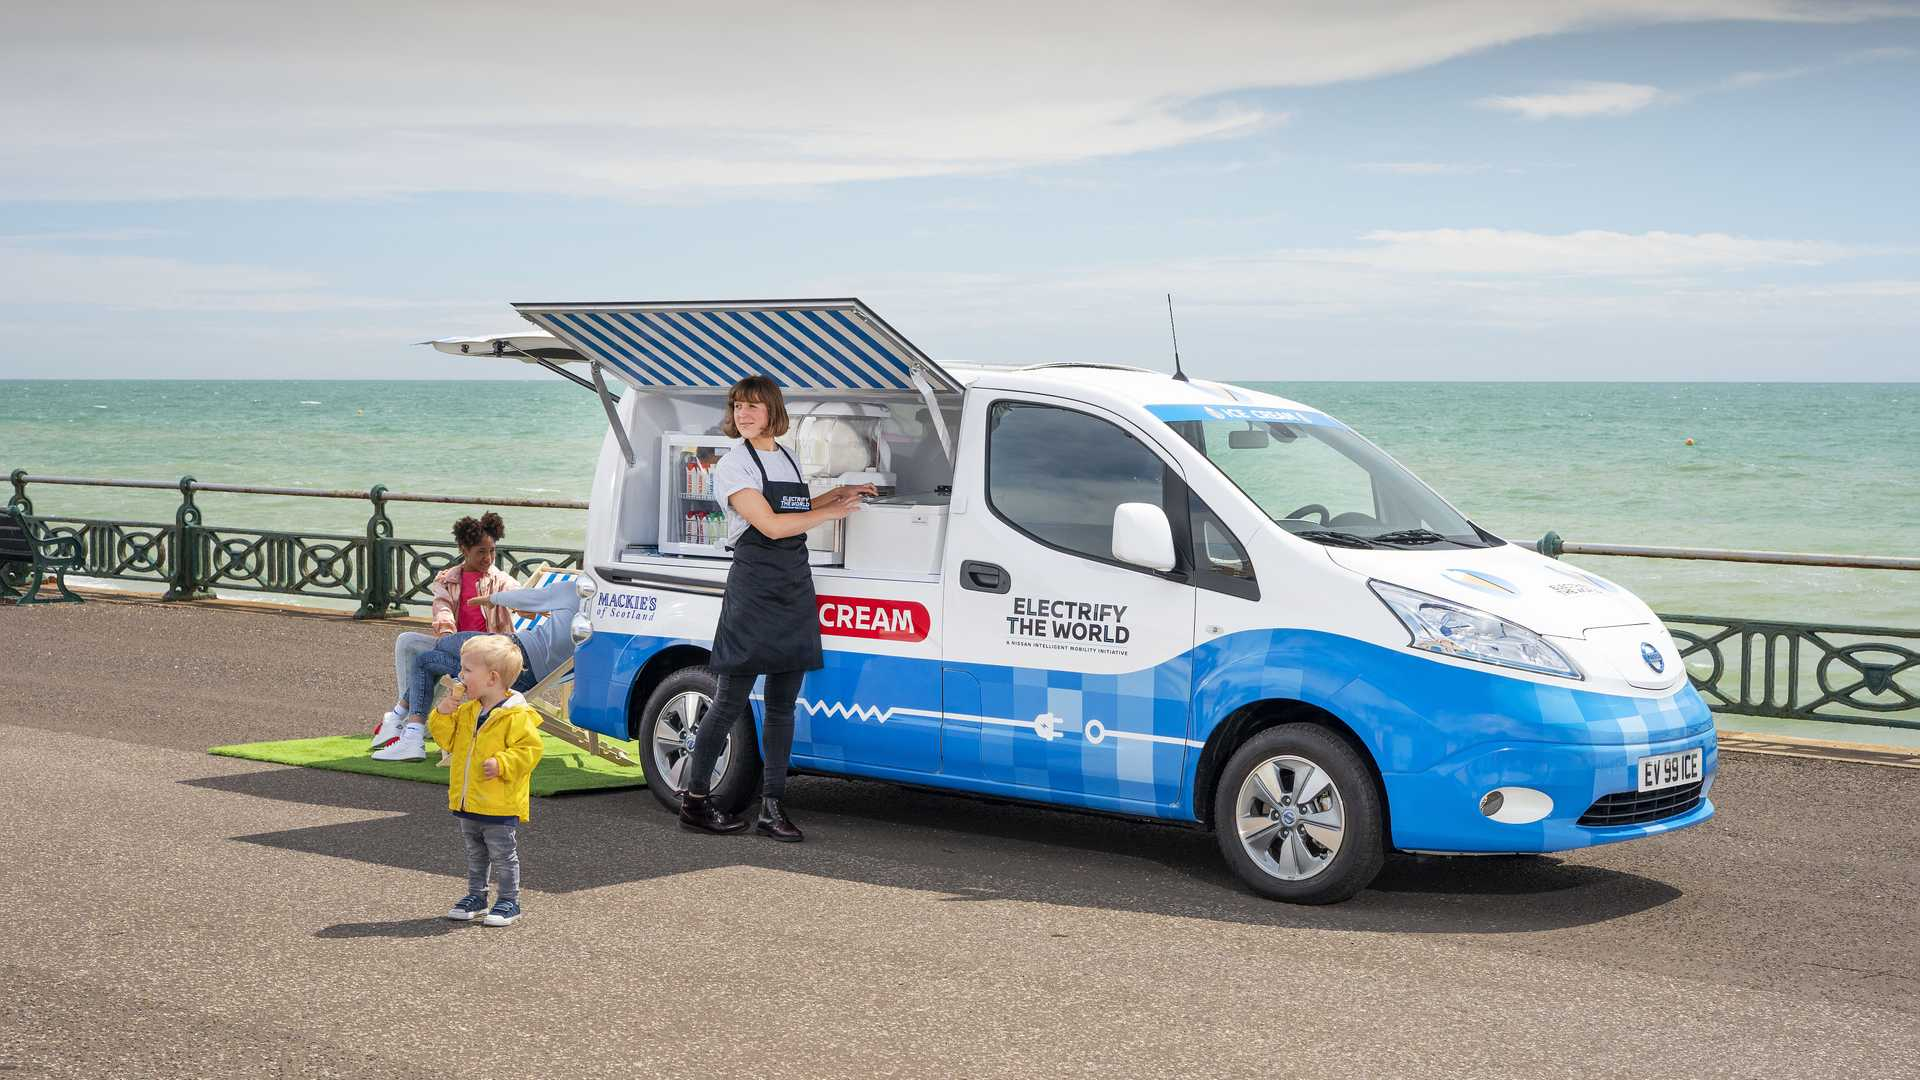 Japanese car manufacturer Nissan has joined efforts with ice cream maker Mackie's of Scotland to build a commercial vehicle prototype called the e-NV200 Ice Cream Van Concept